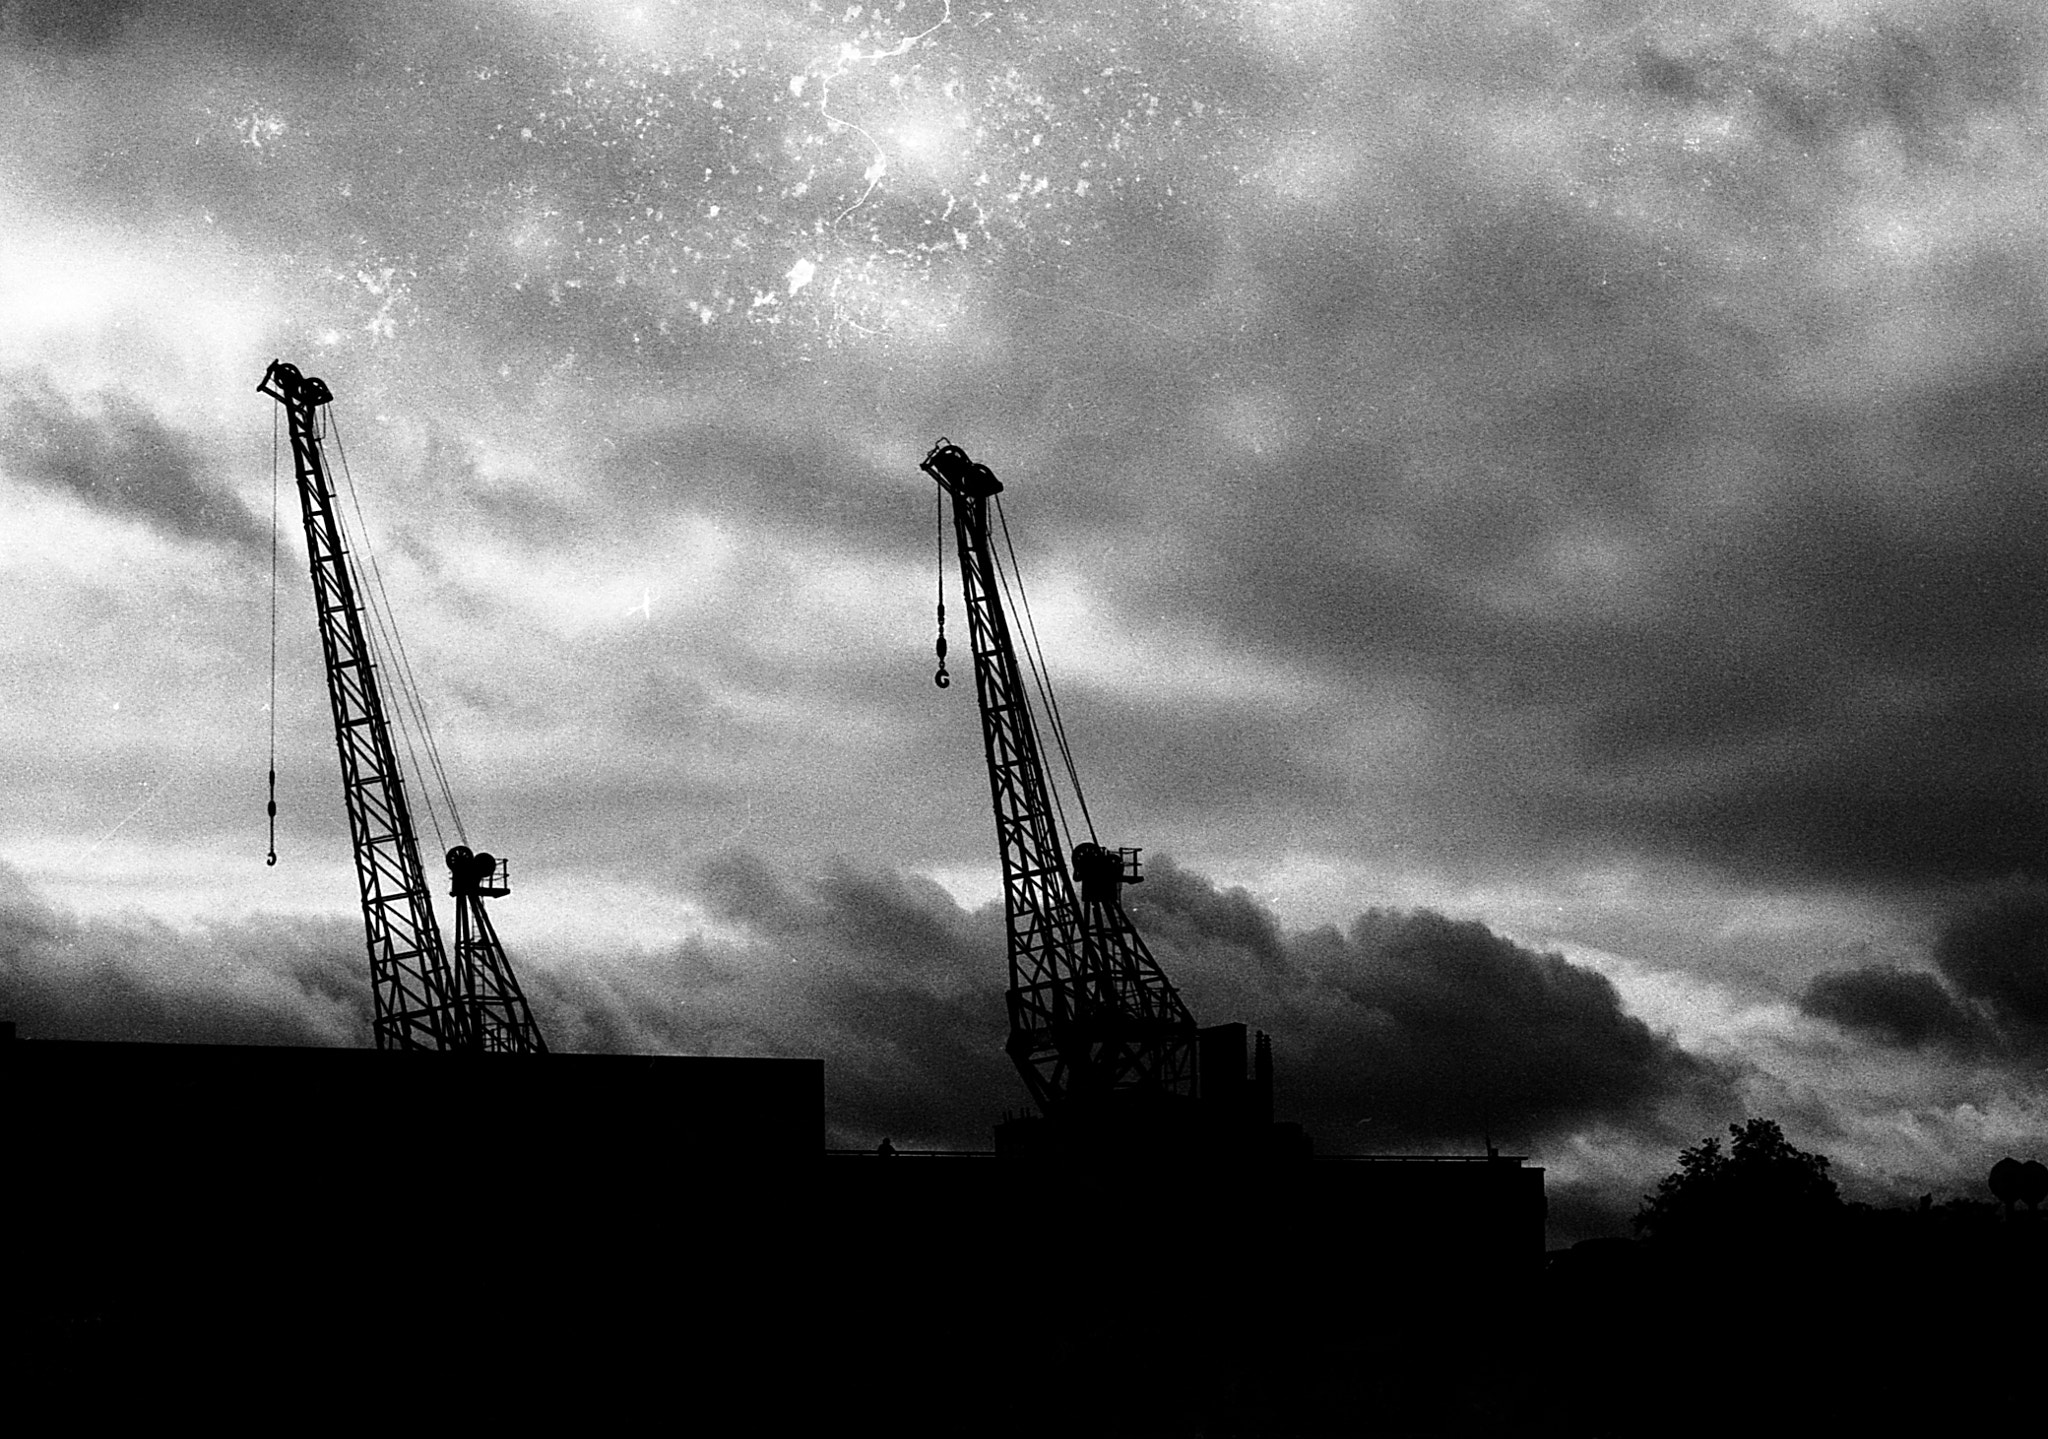 Photograph Between Cranes by Odysseas Pappas on 500px